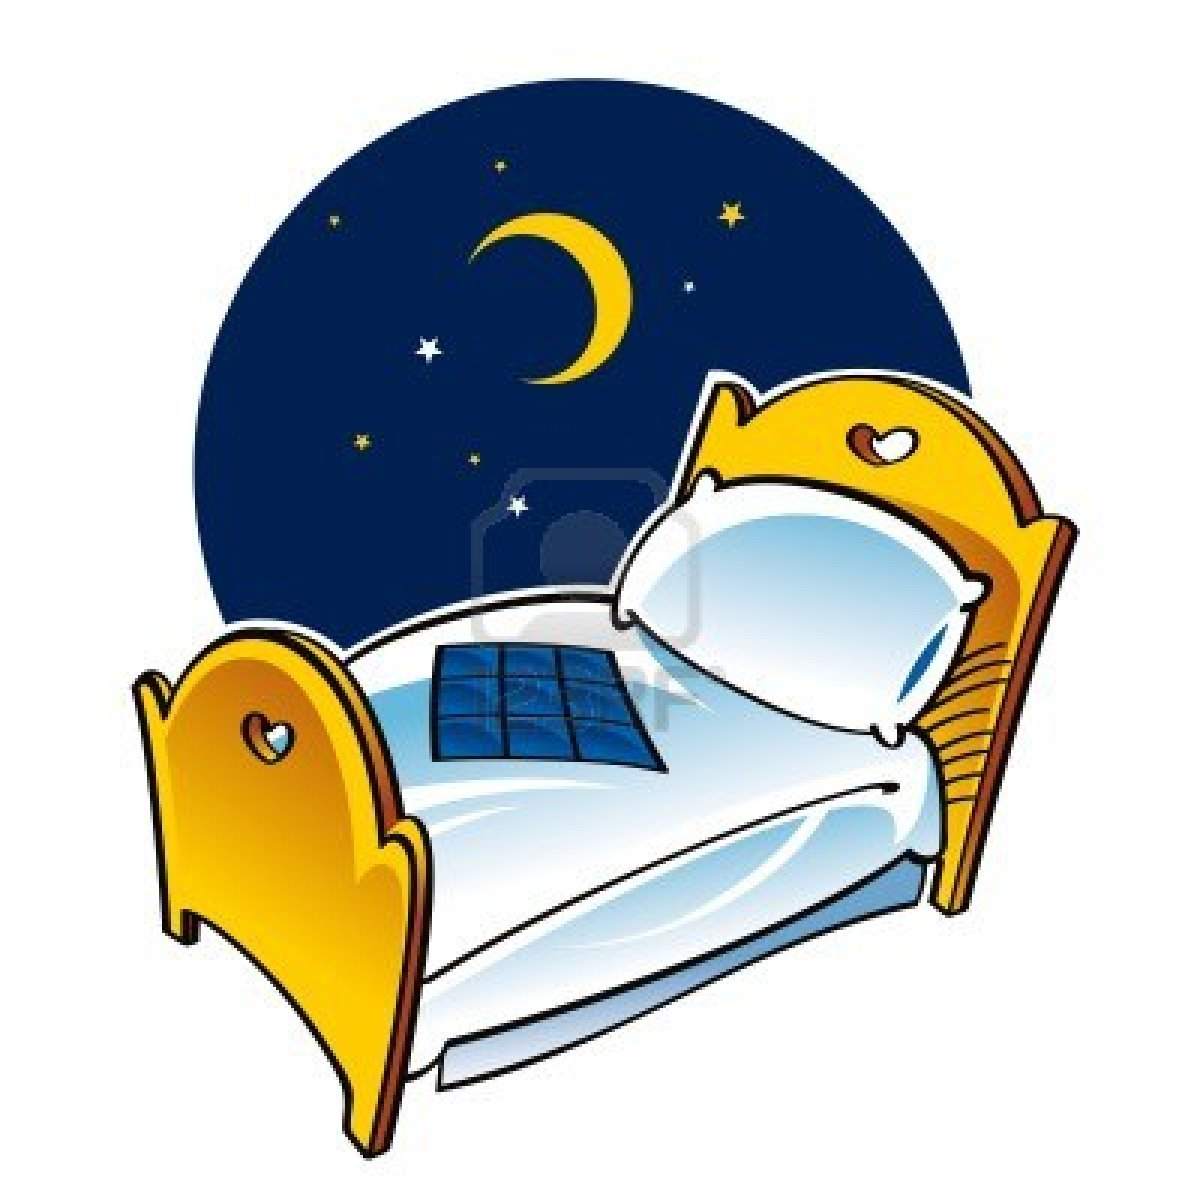 Night Clipart - Clipart Kid